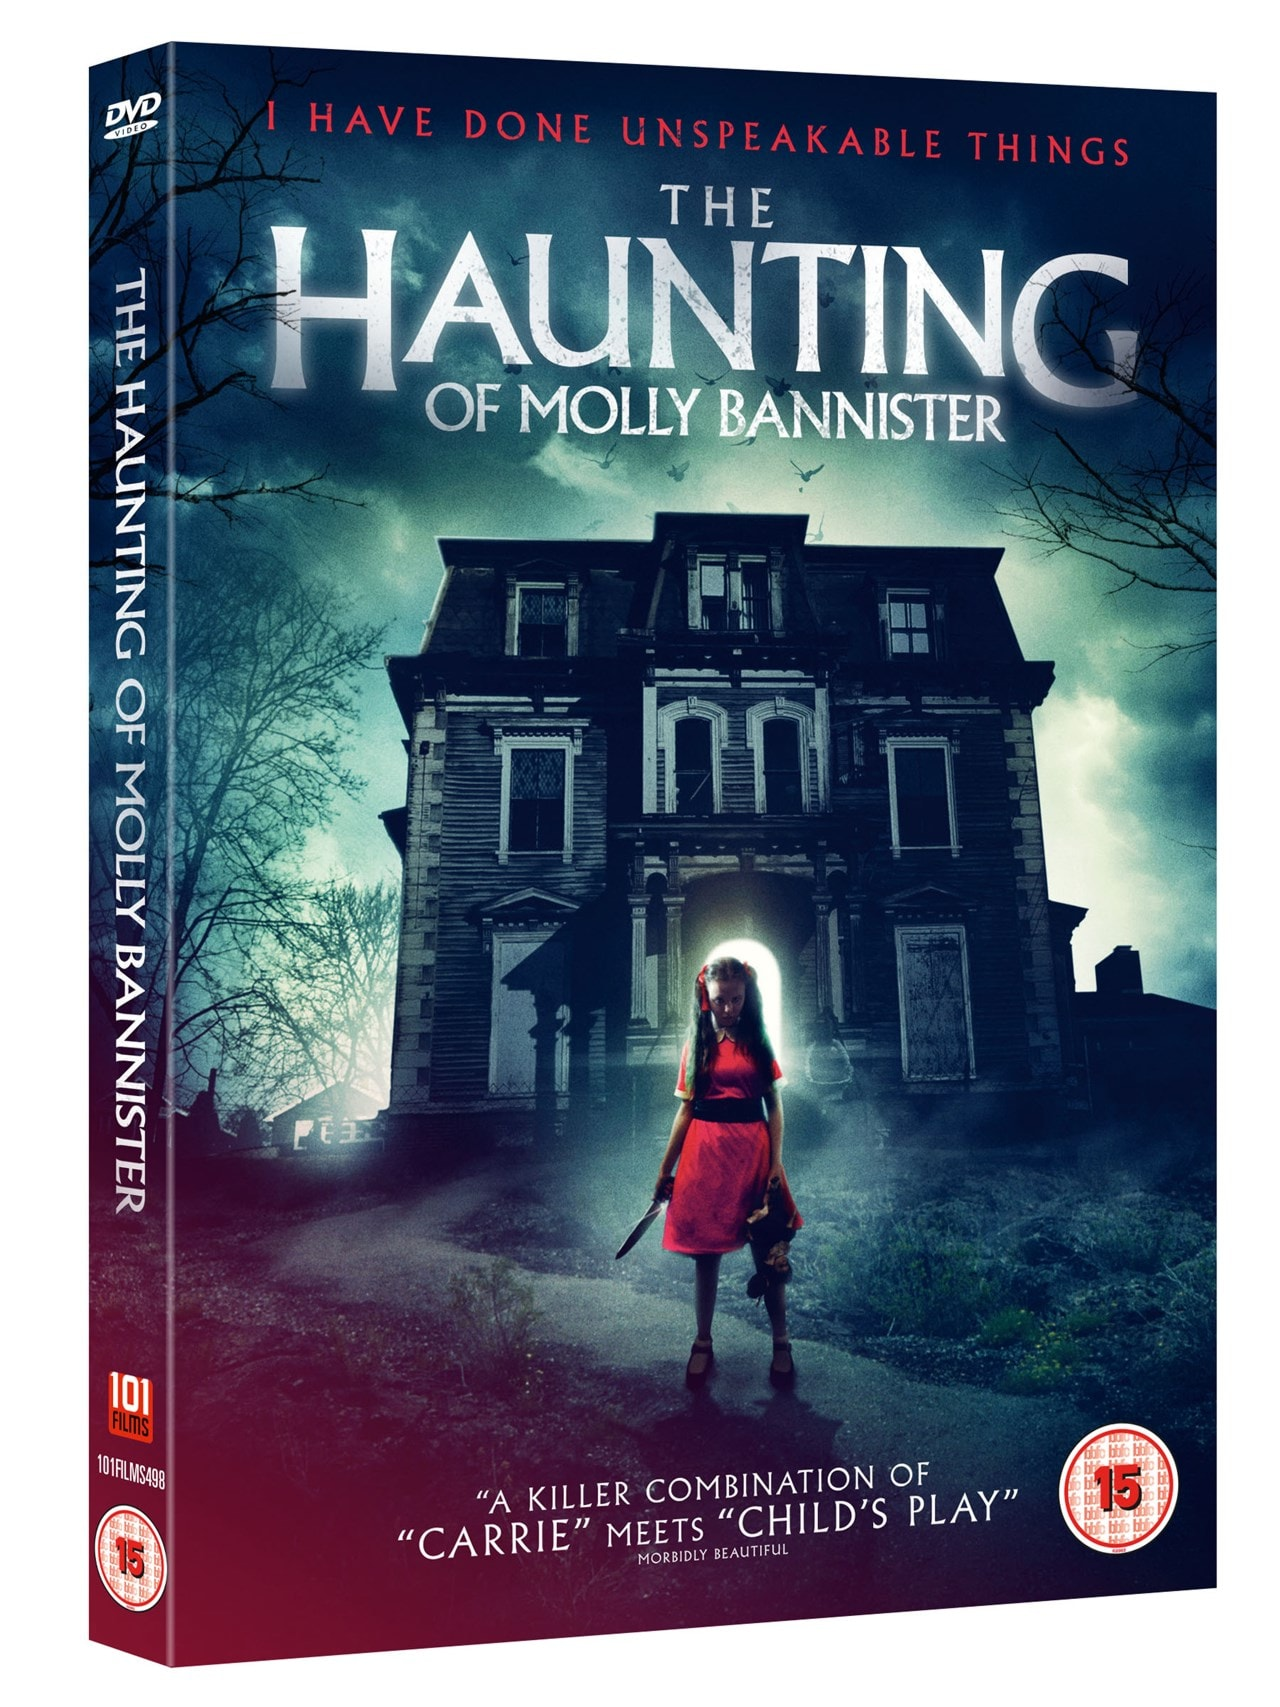 The Haunting of Molly Bannister - 2